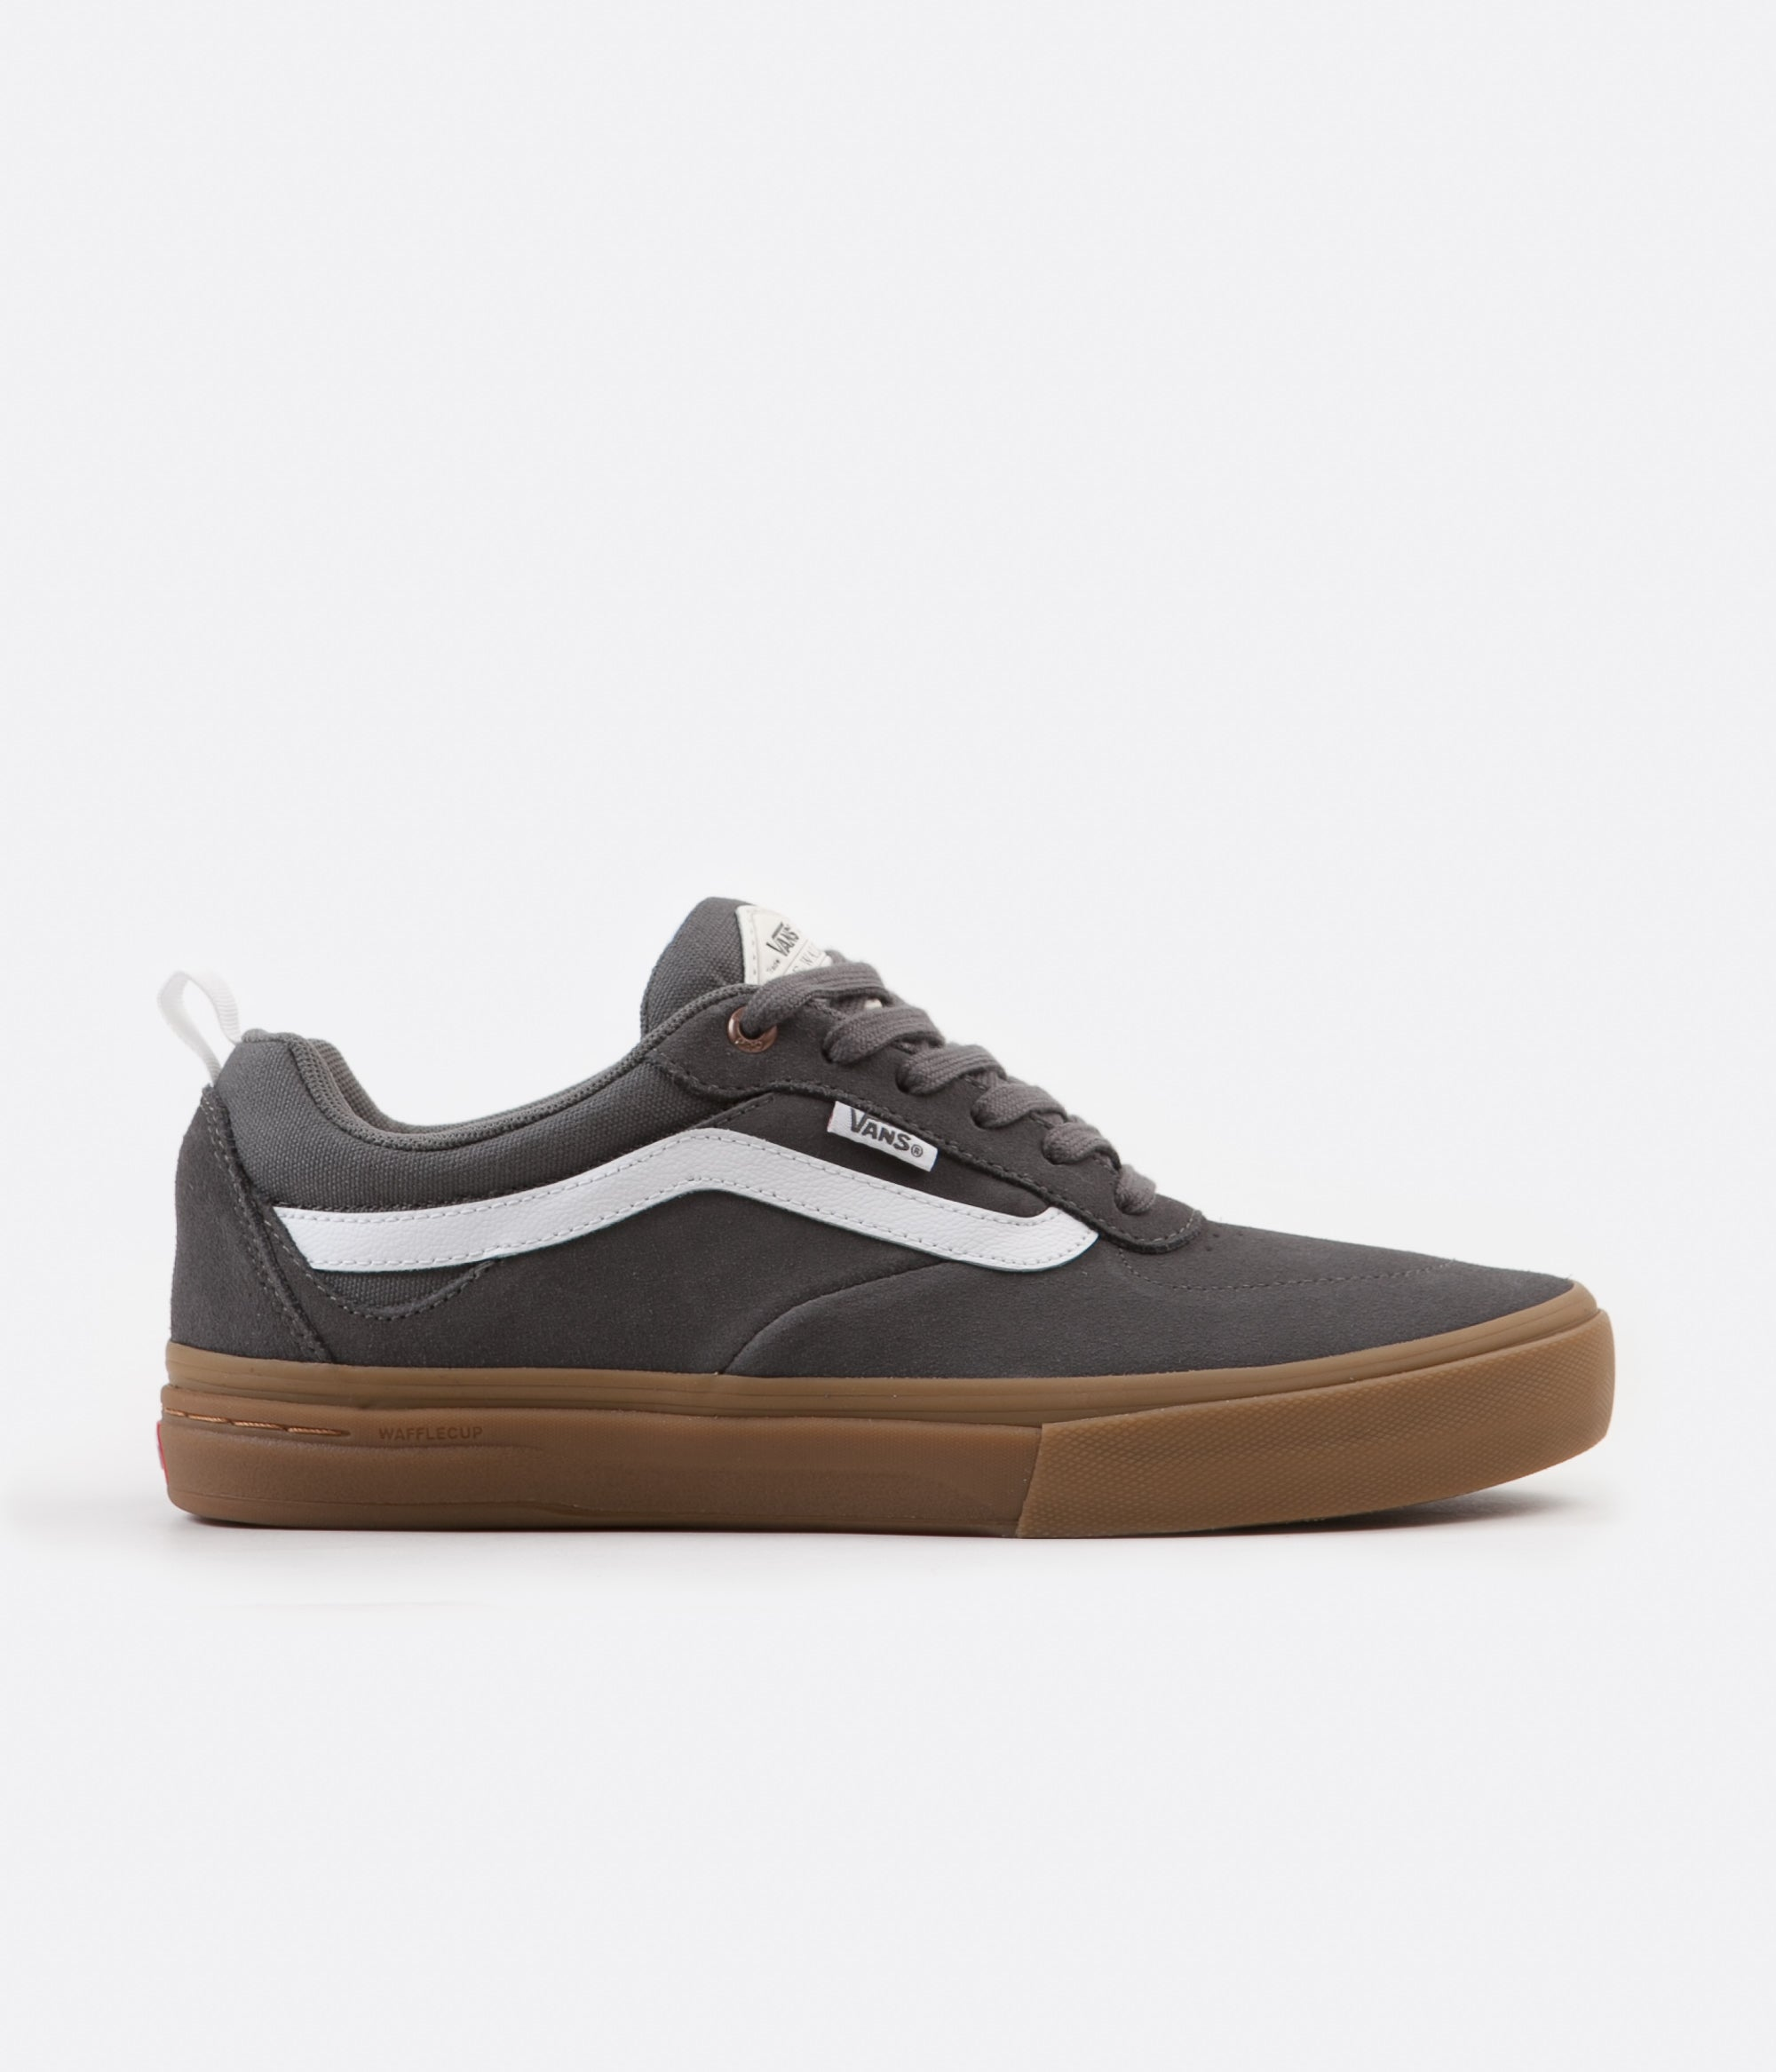 f6b785cc5e Vans Kyle Walker Pro Shoes - Pewter   Light Gum